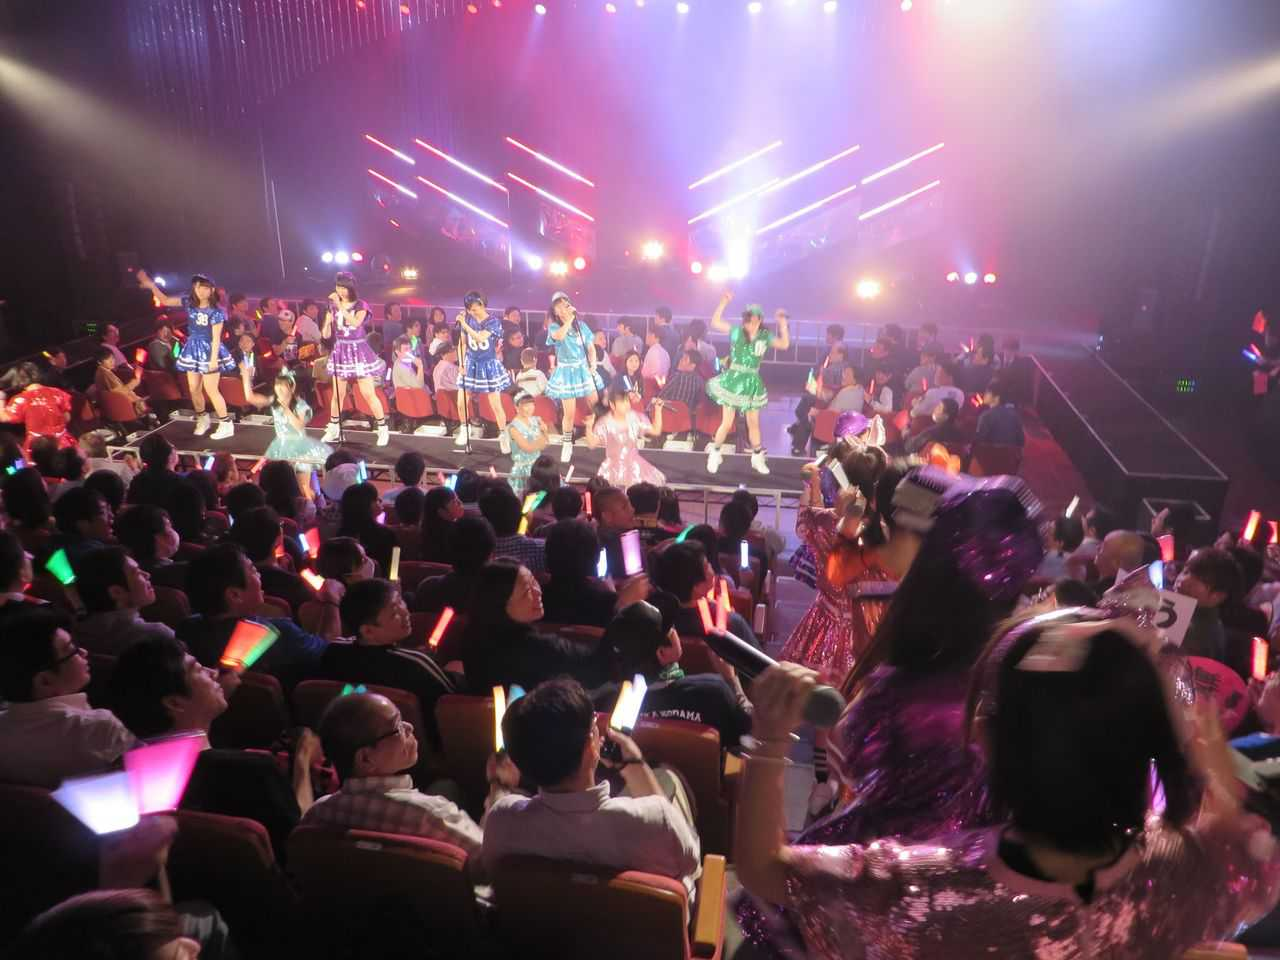 2ch says: What is common among first-time wota at concerts & performances?